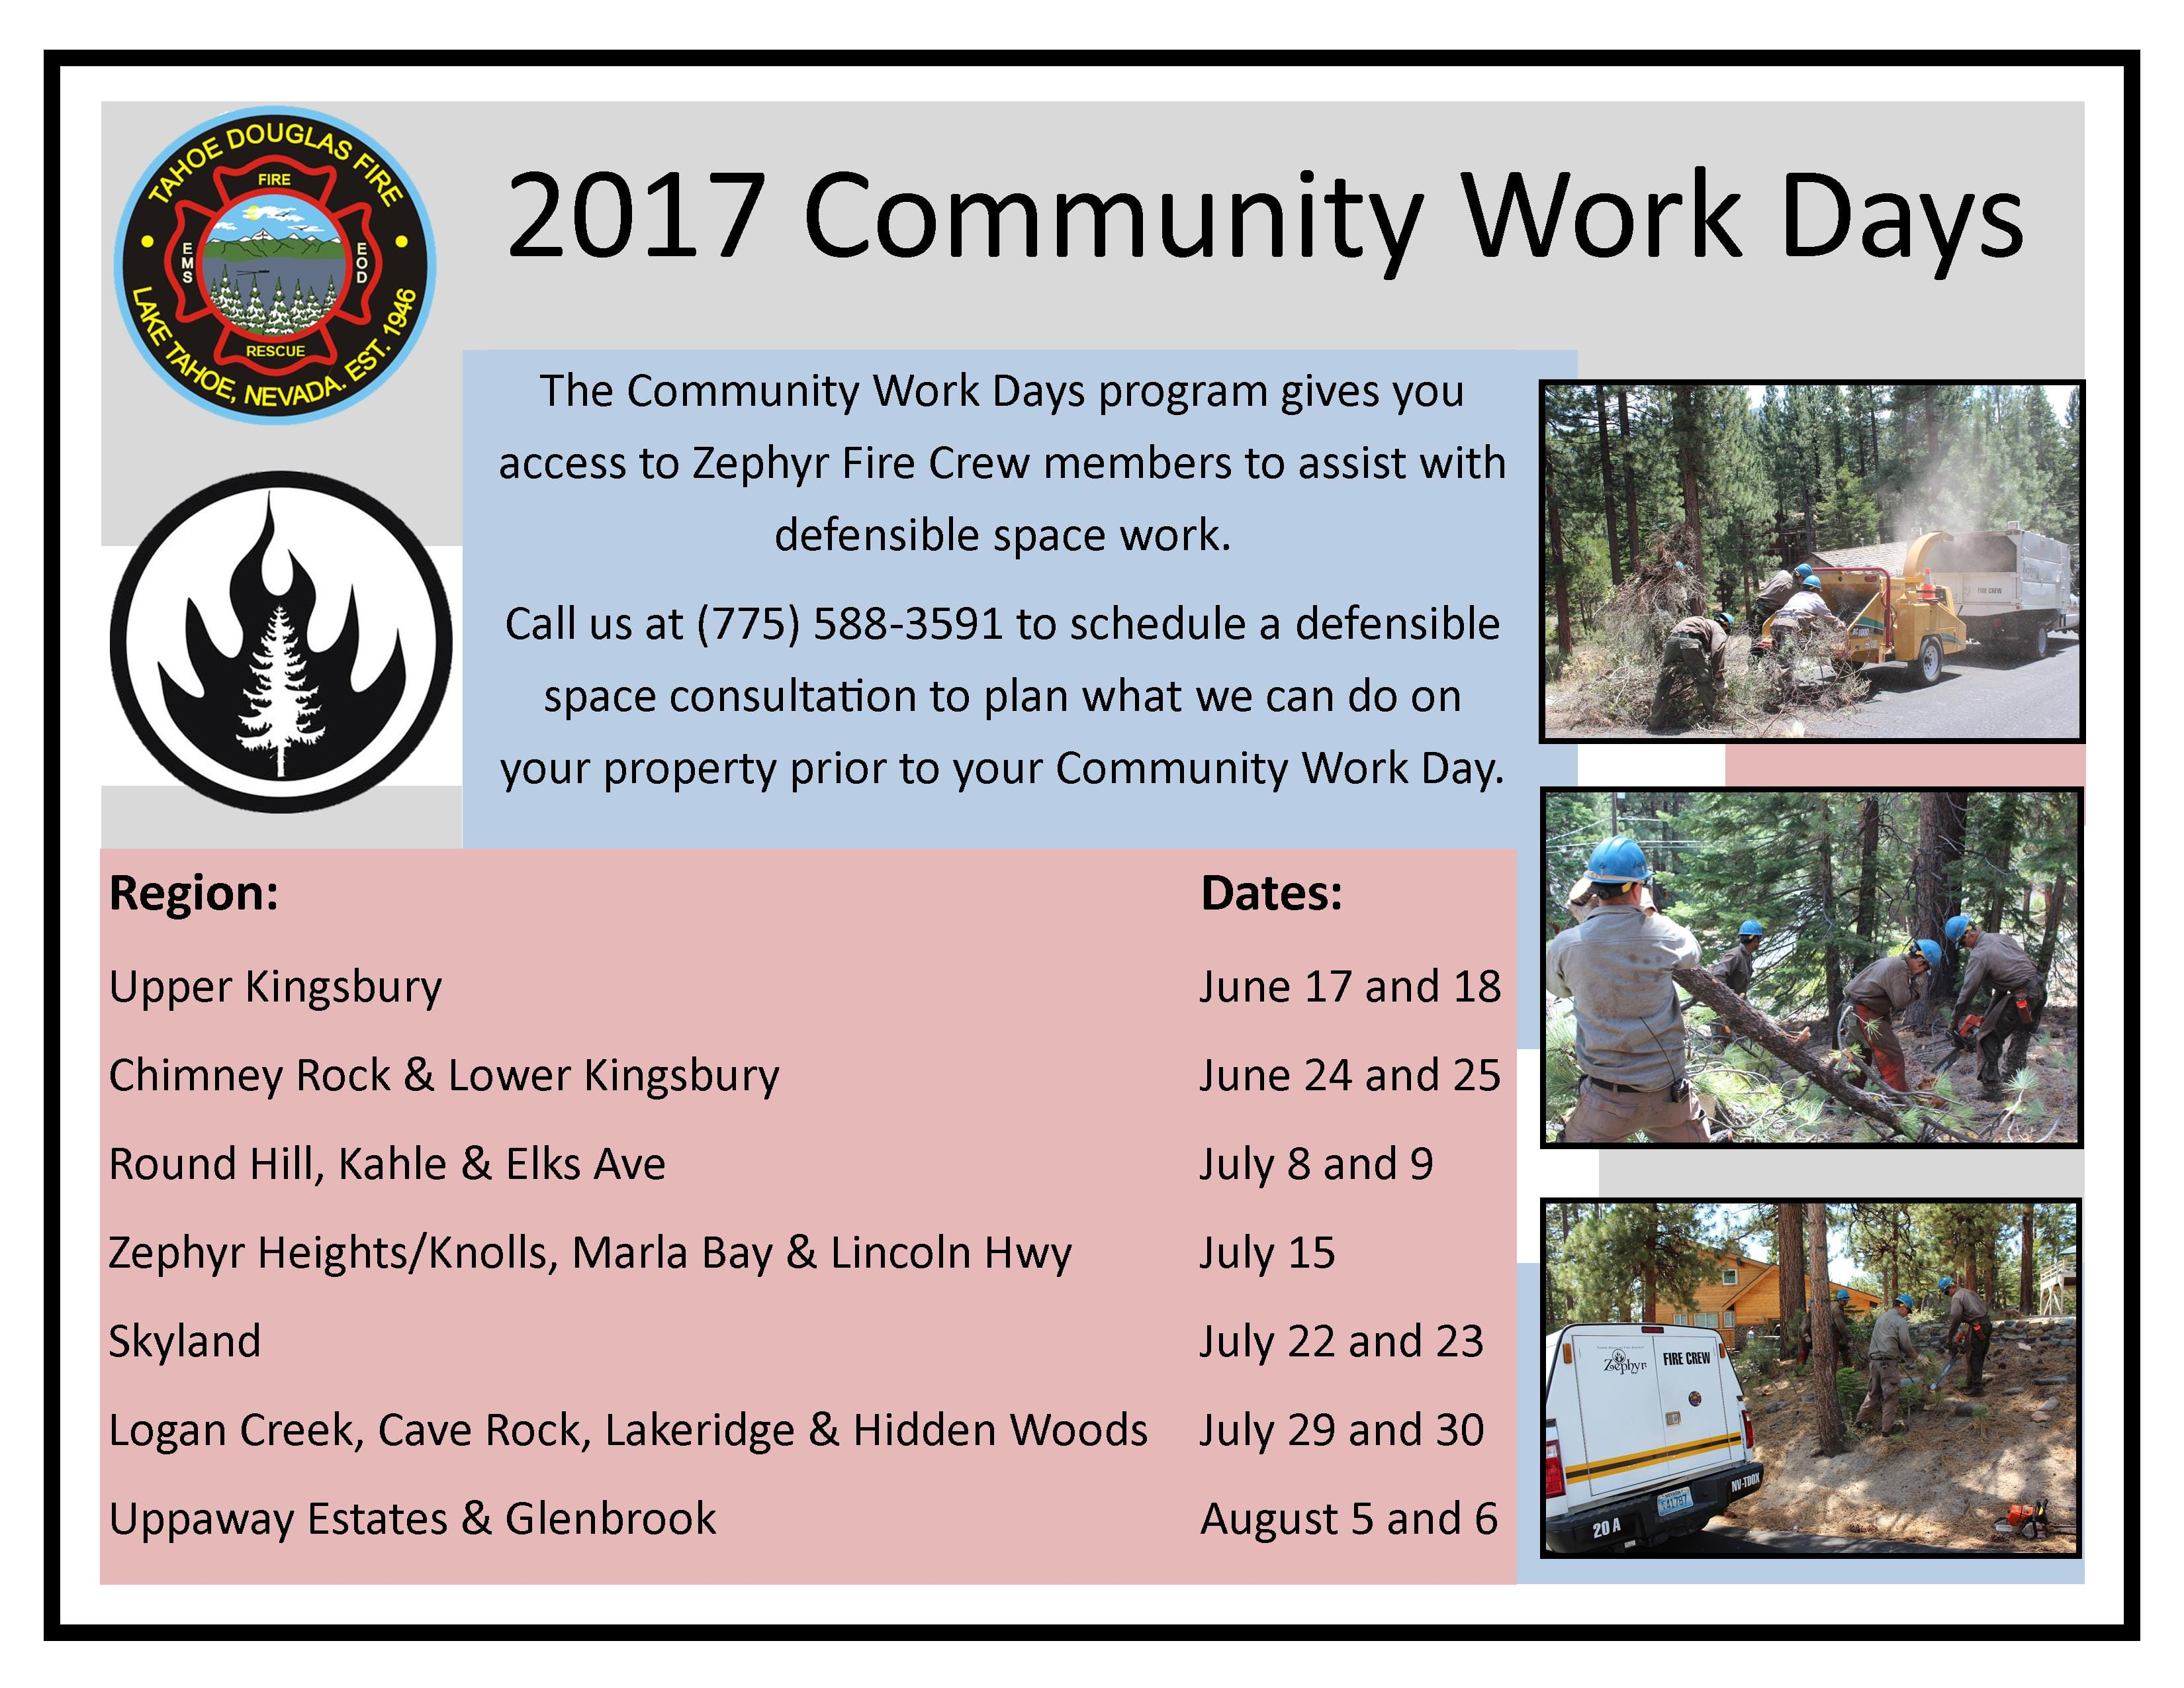 2017 Community Work Days